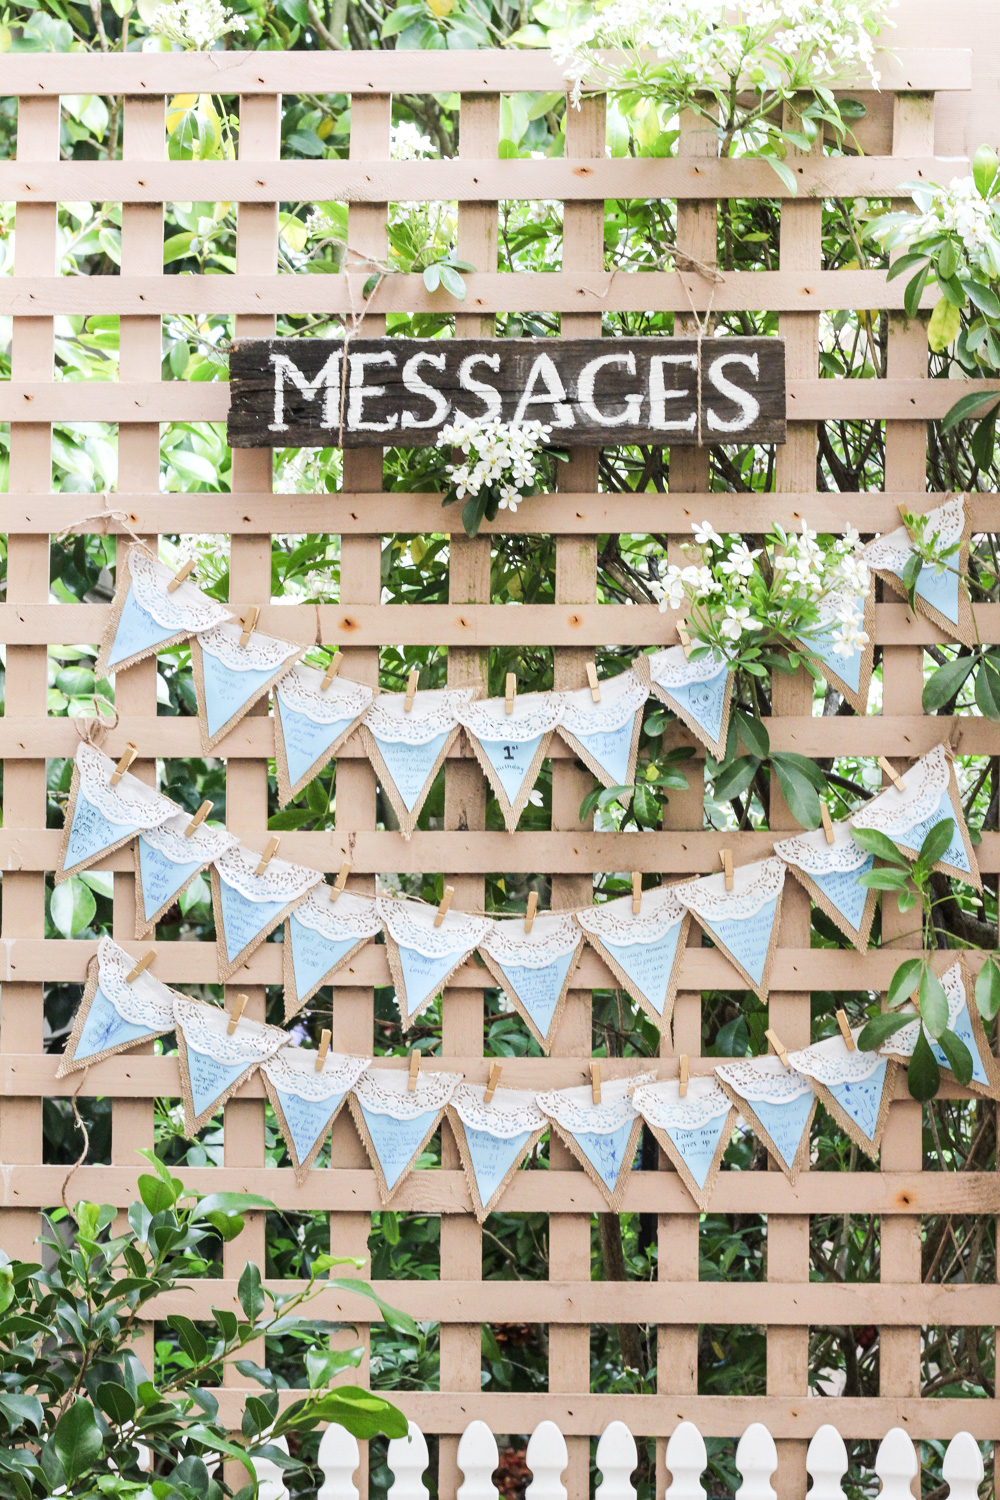 Messages on pretty bunting at Peter Rabbit birthday party